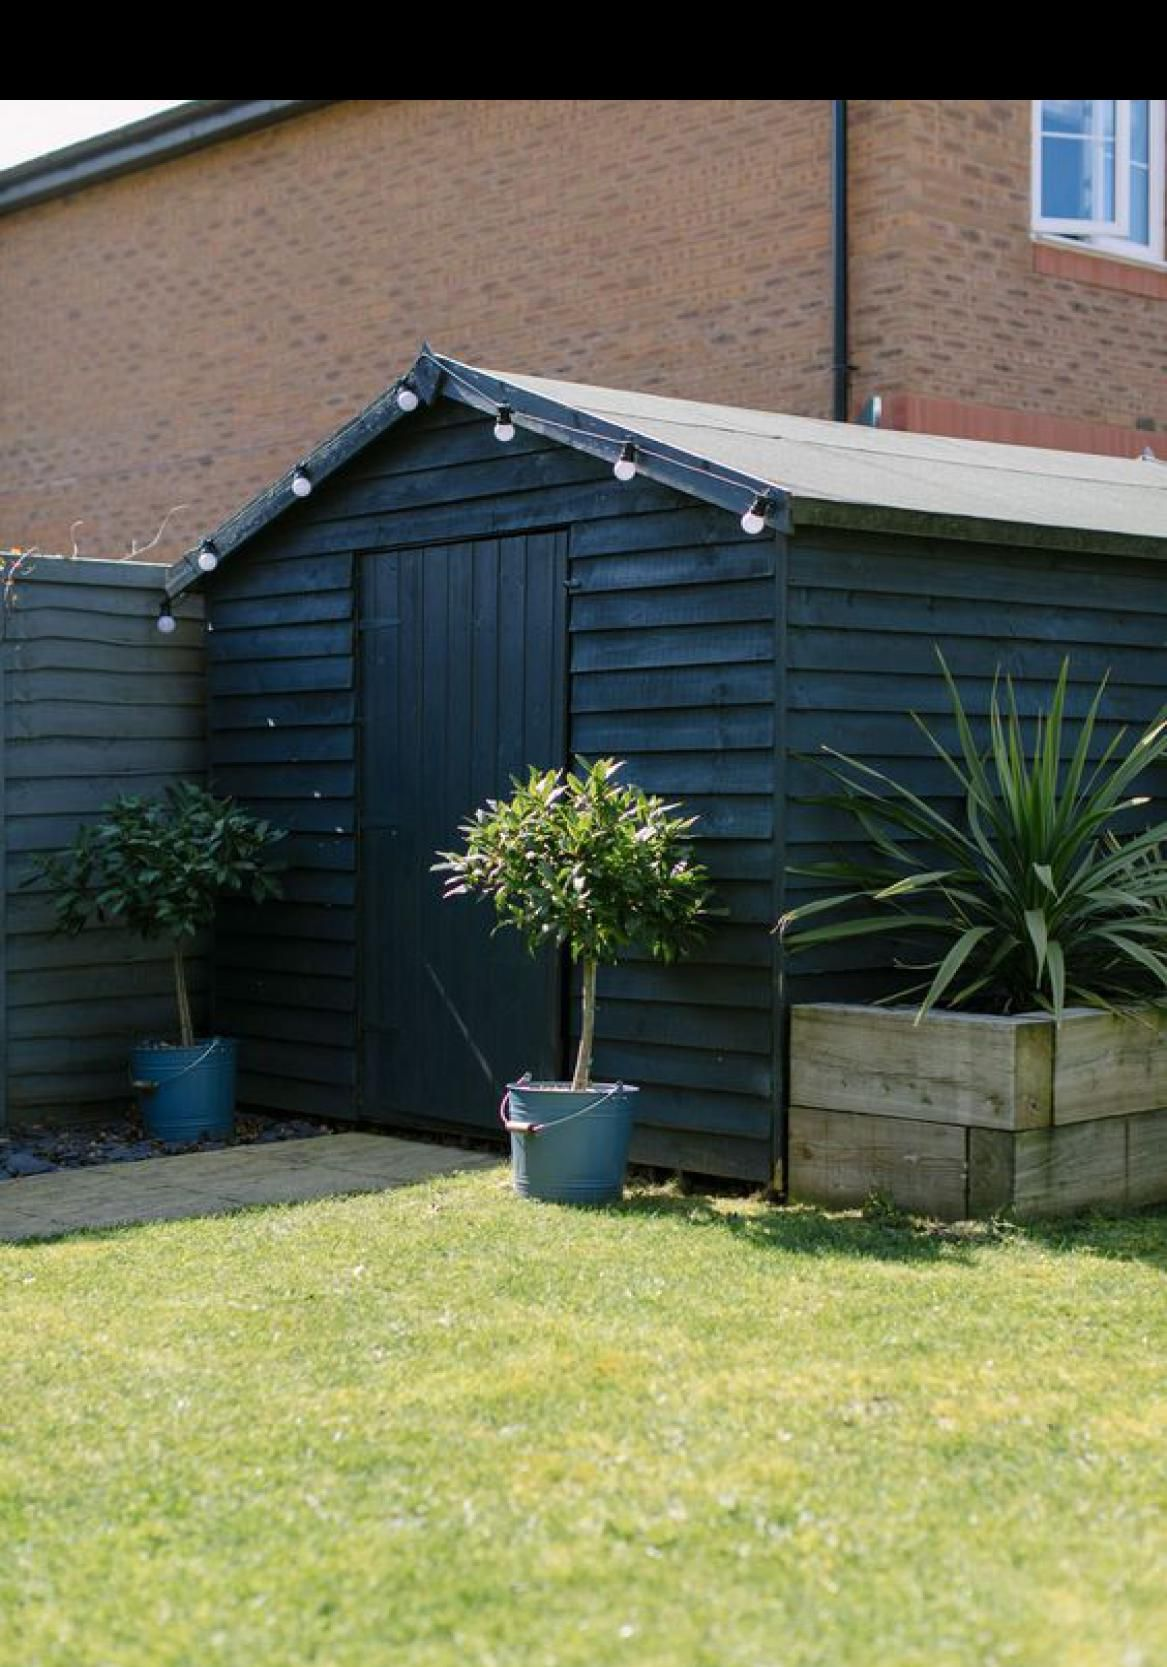 49 Fantastic Luxury Garden Décor Ideas Painted Garden Sheds Home Landscaping Shed